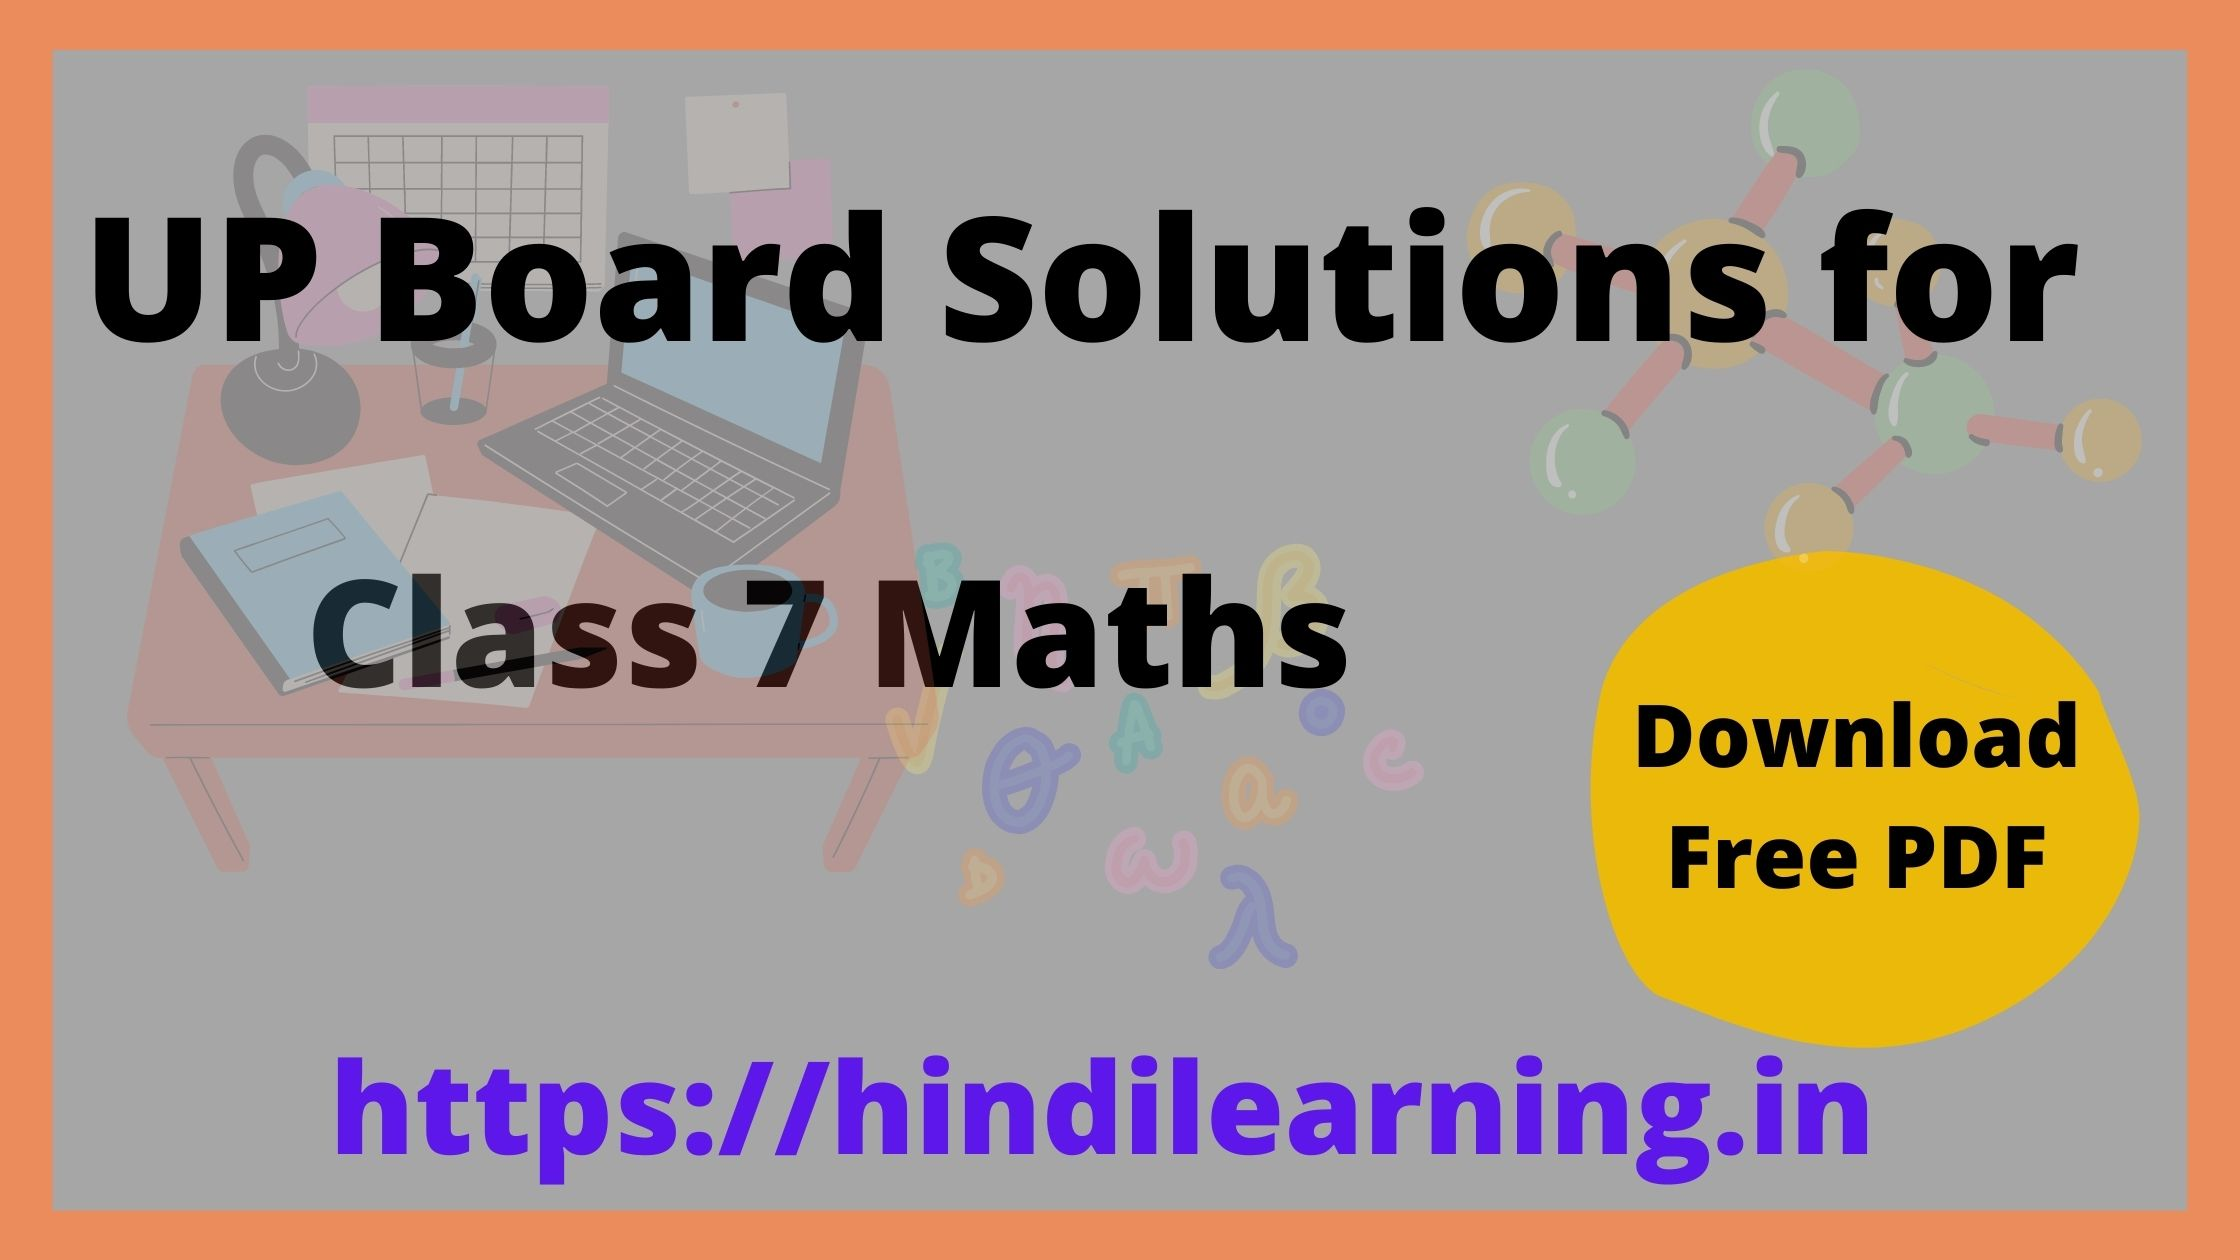 UP Board Solutions for Class 7 Maths (गणित)